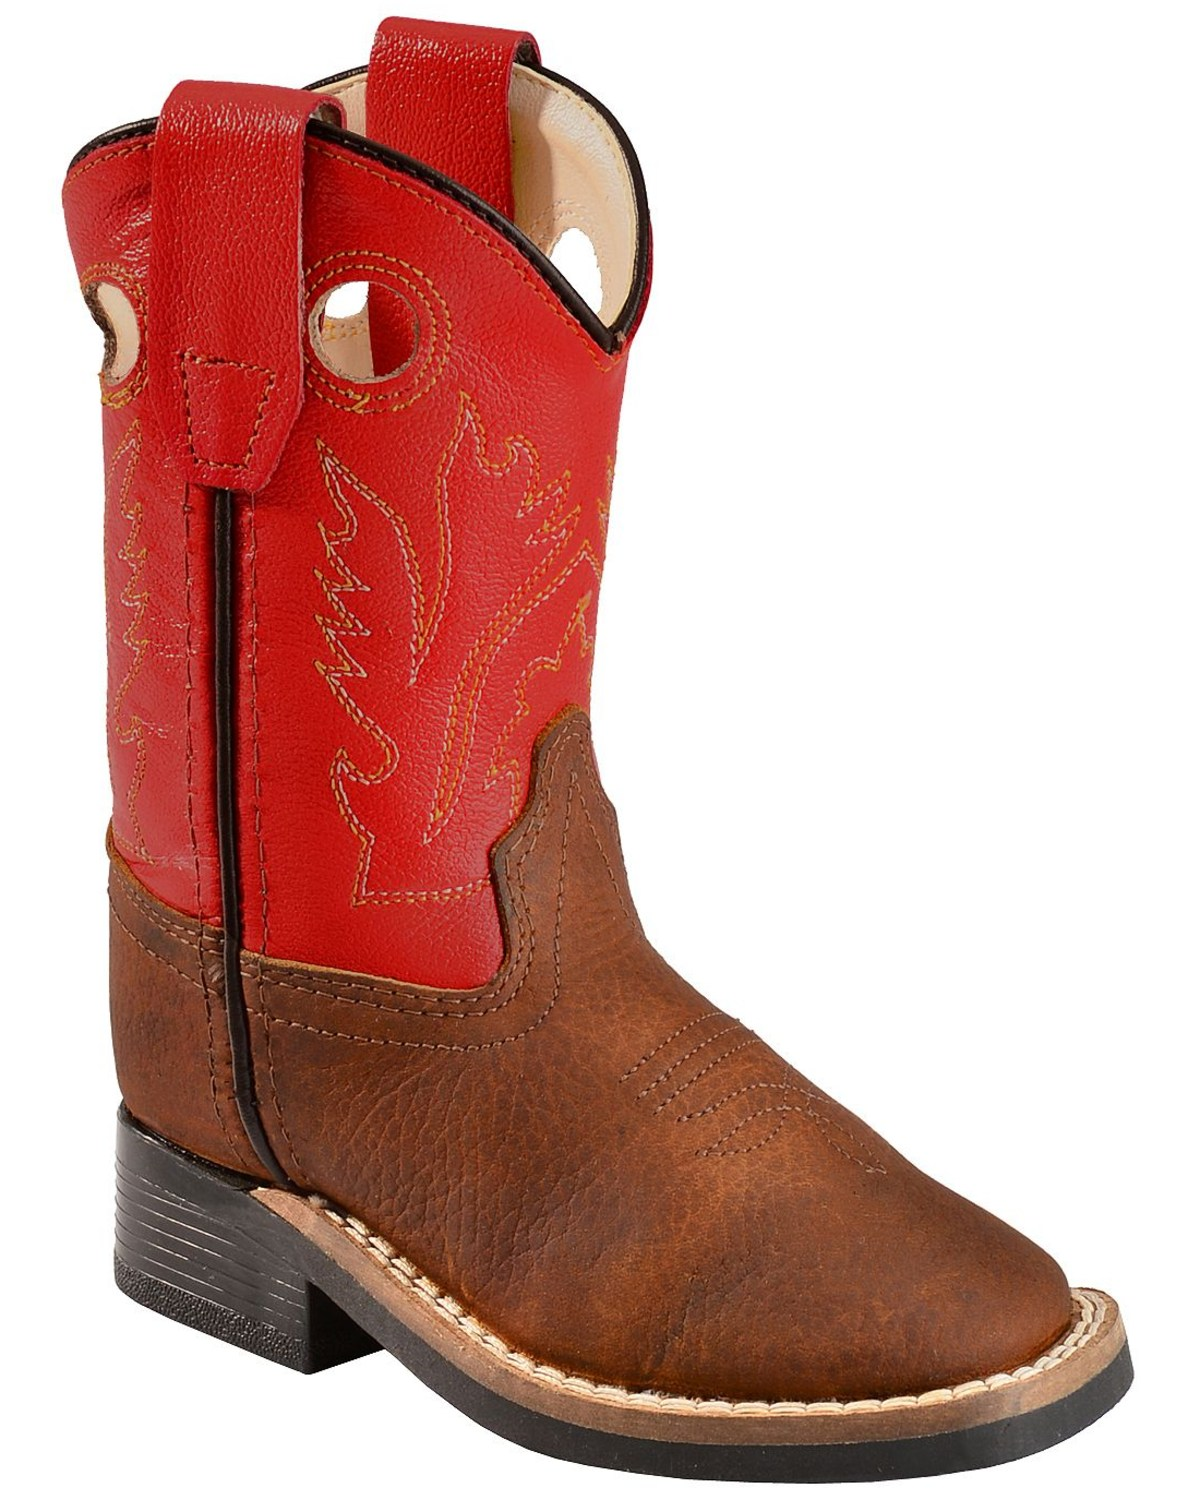 4a83f667fdb Old West Toddler Boys' Orange Cowboy Boots - Square Toe